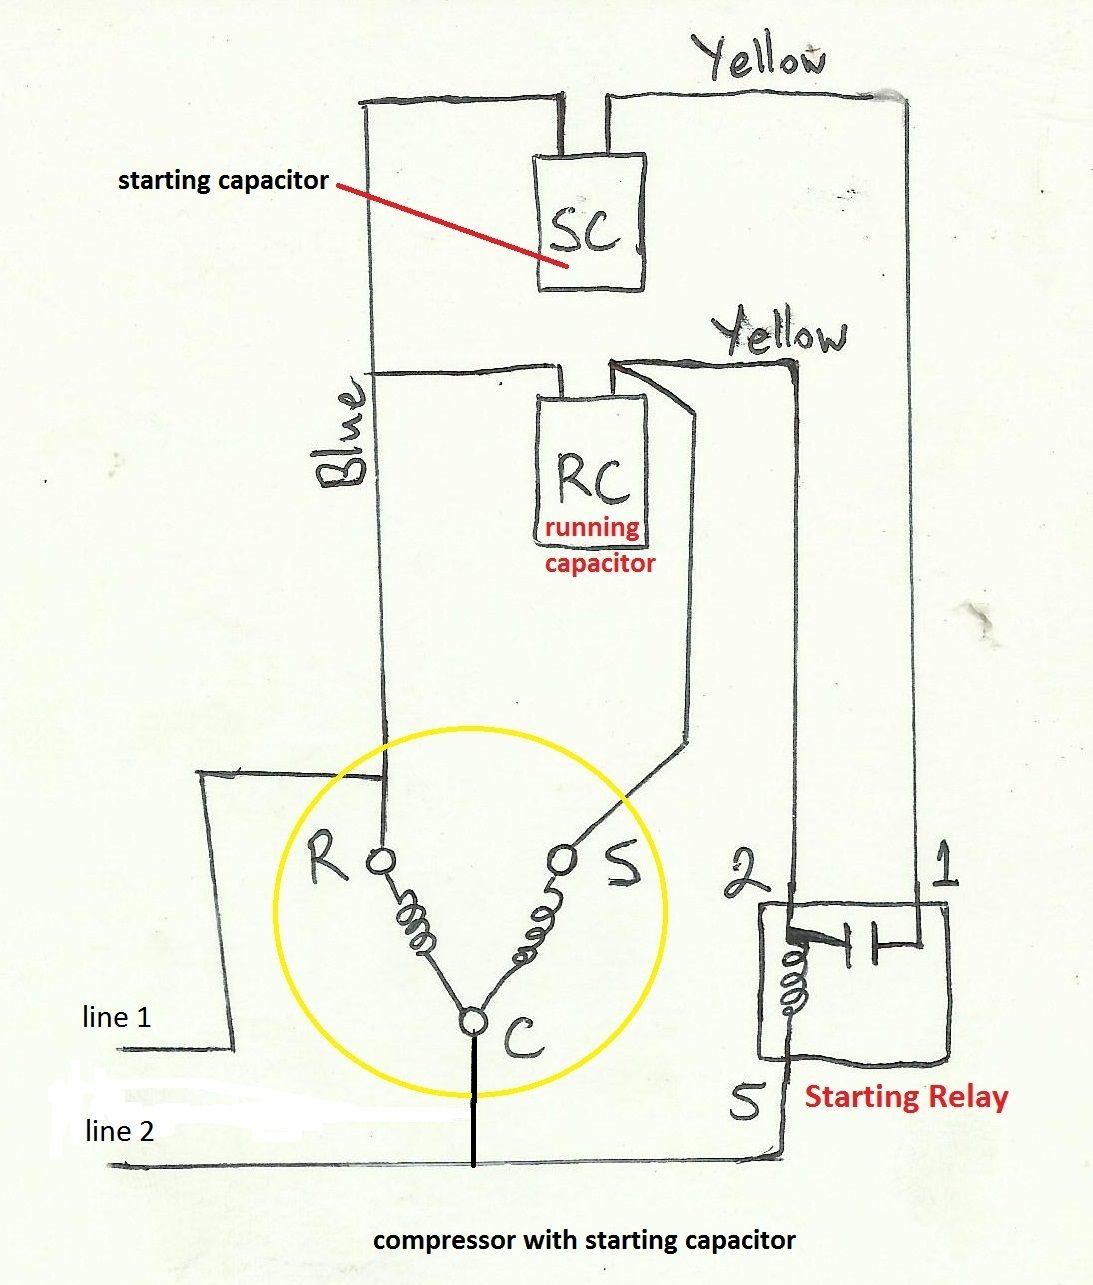 hight resolution of wiring diagram for air compressor motor wiring diagram for air pressor motor air pressor capacitor